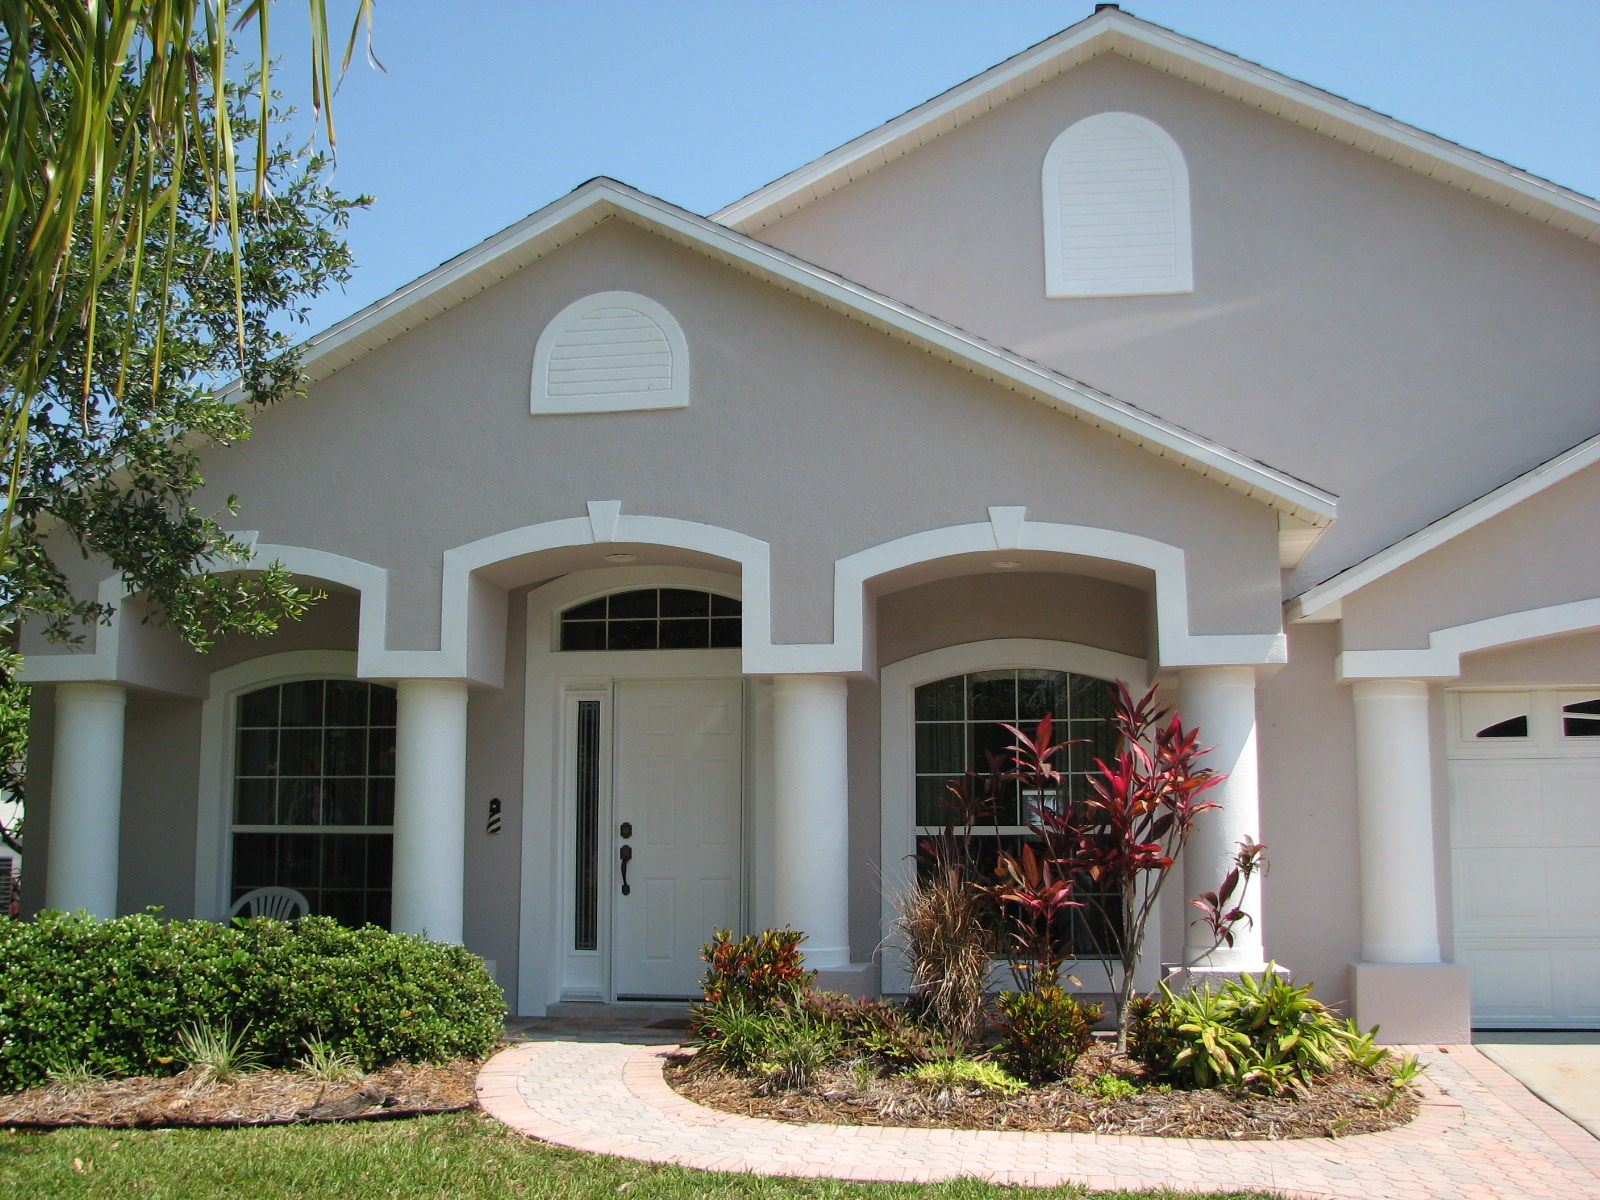 Exterior Painting Photo Gallery by Peck Painting - Brevard County,Fl